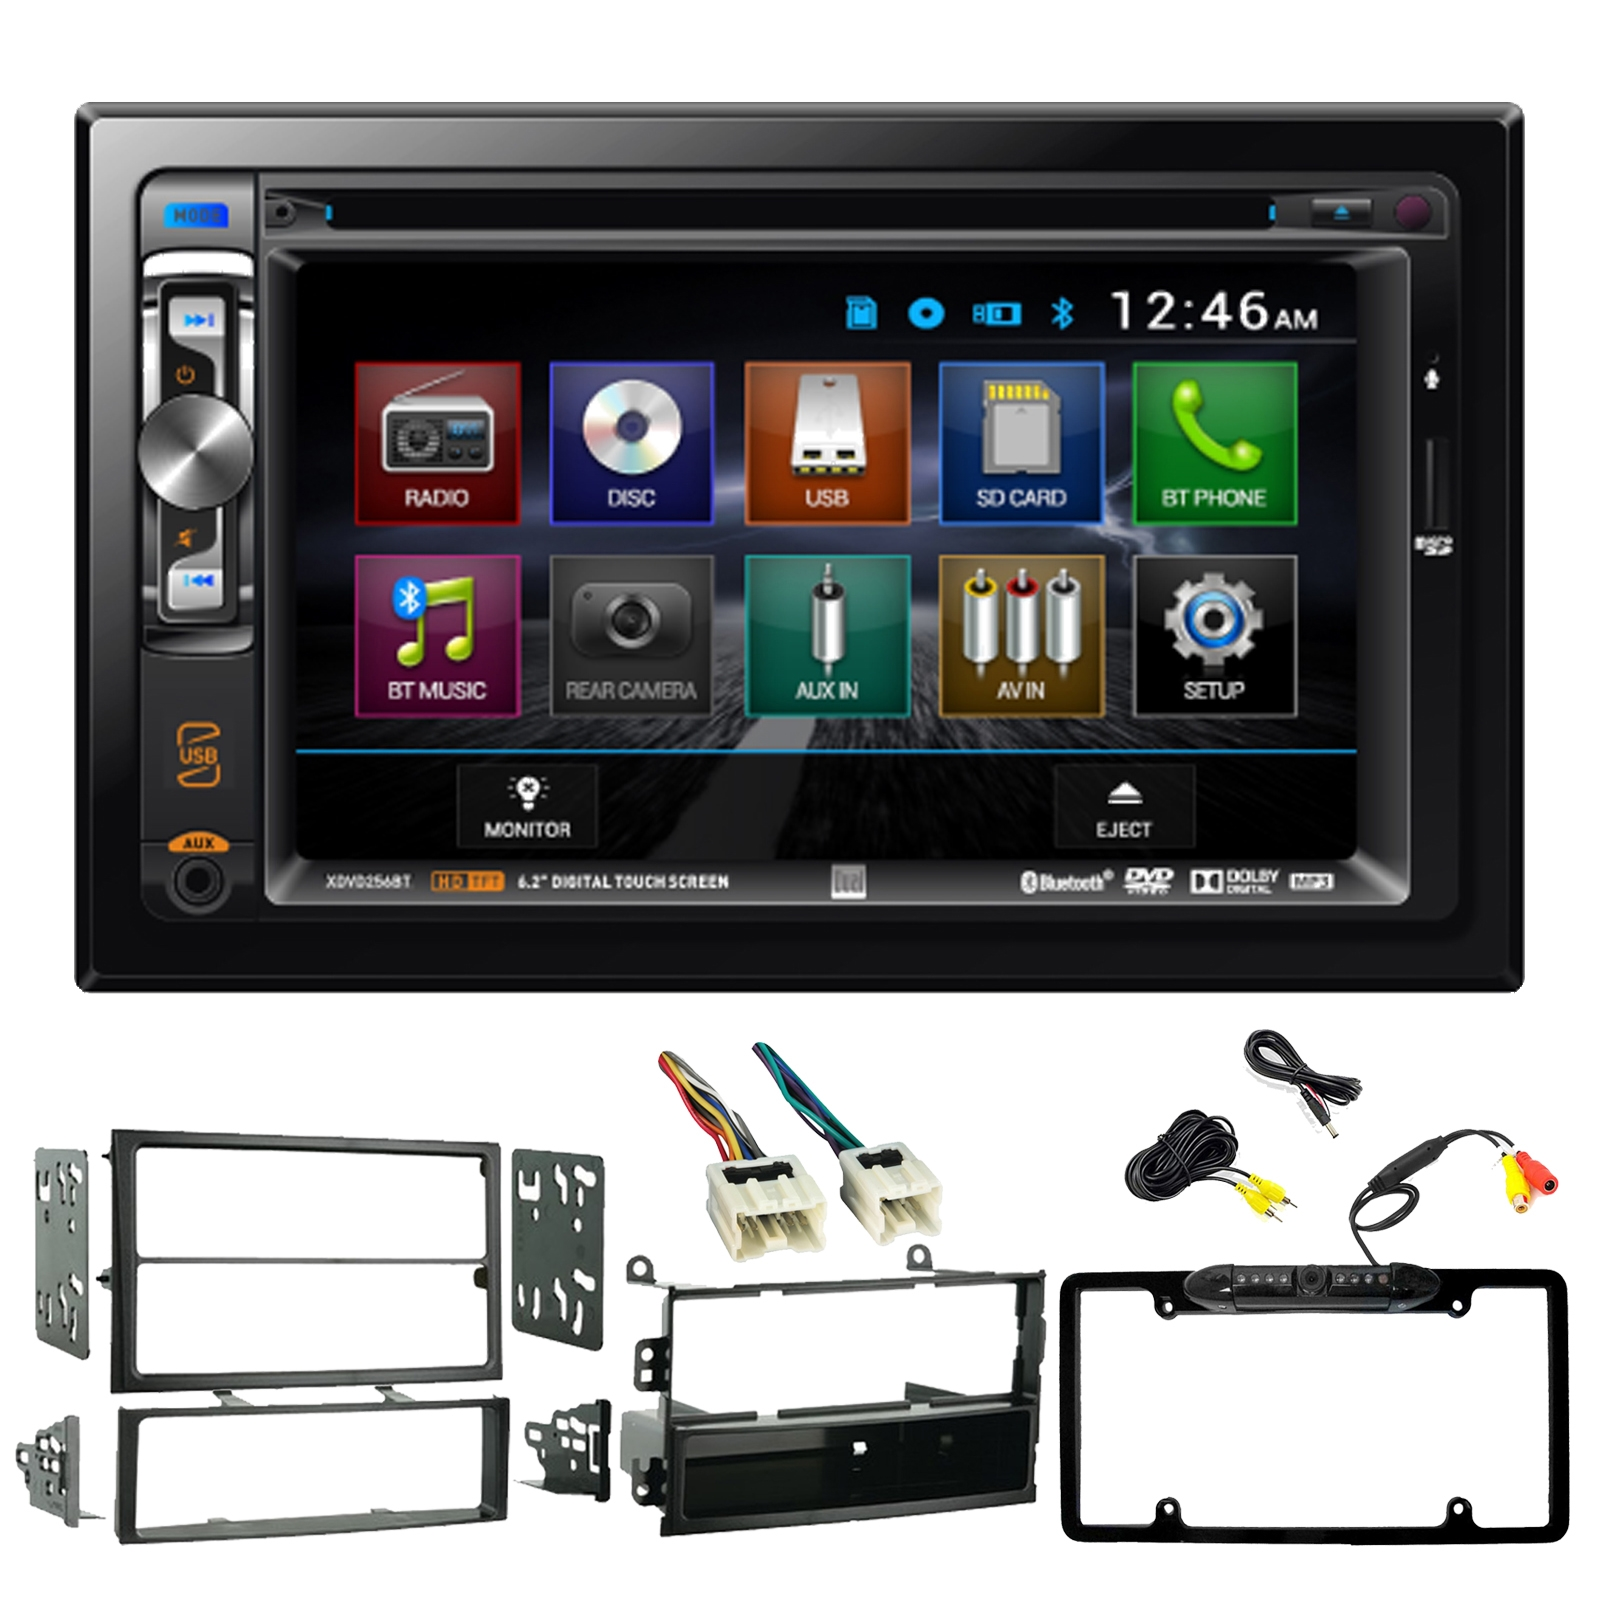 hight resolution of dual electronics xdvd256bt 6 2 2 din dvd cd bluetooth receiver metra 99 7402 dash kit for 2003 2005 nissan 350z metra wiring harness enrock car rearview